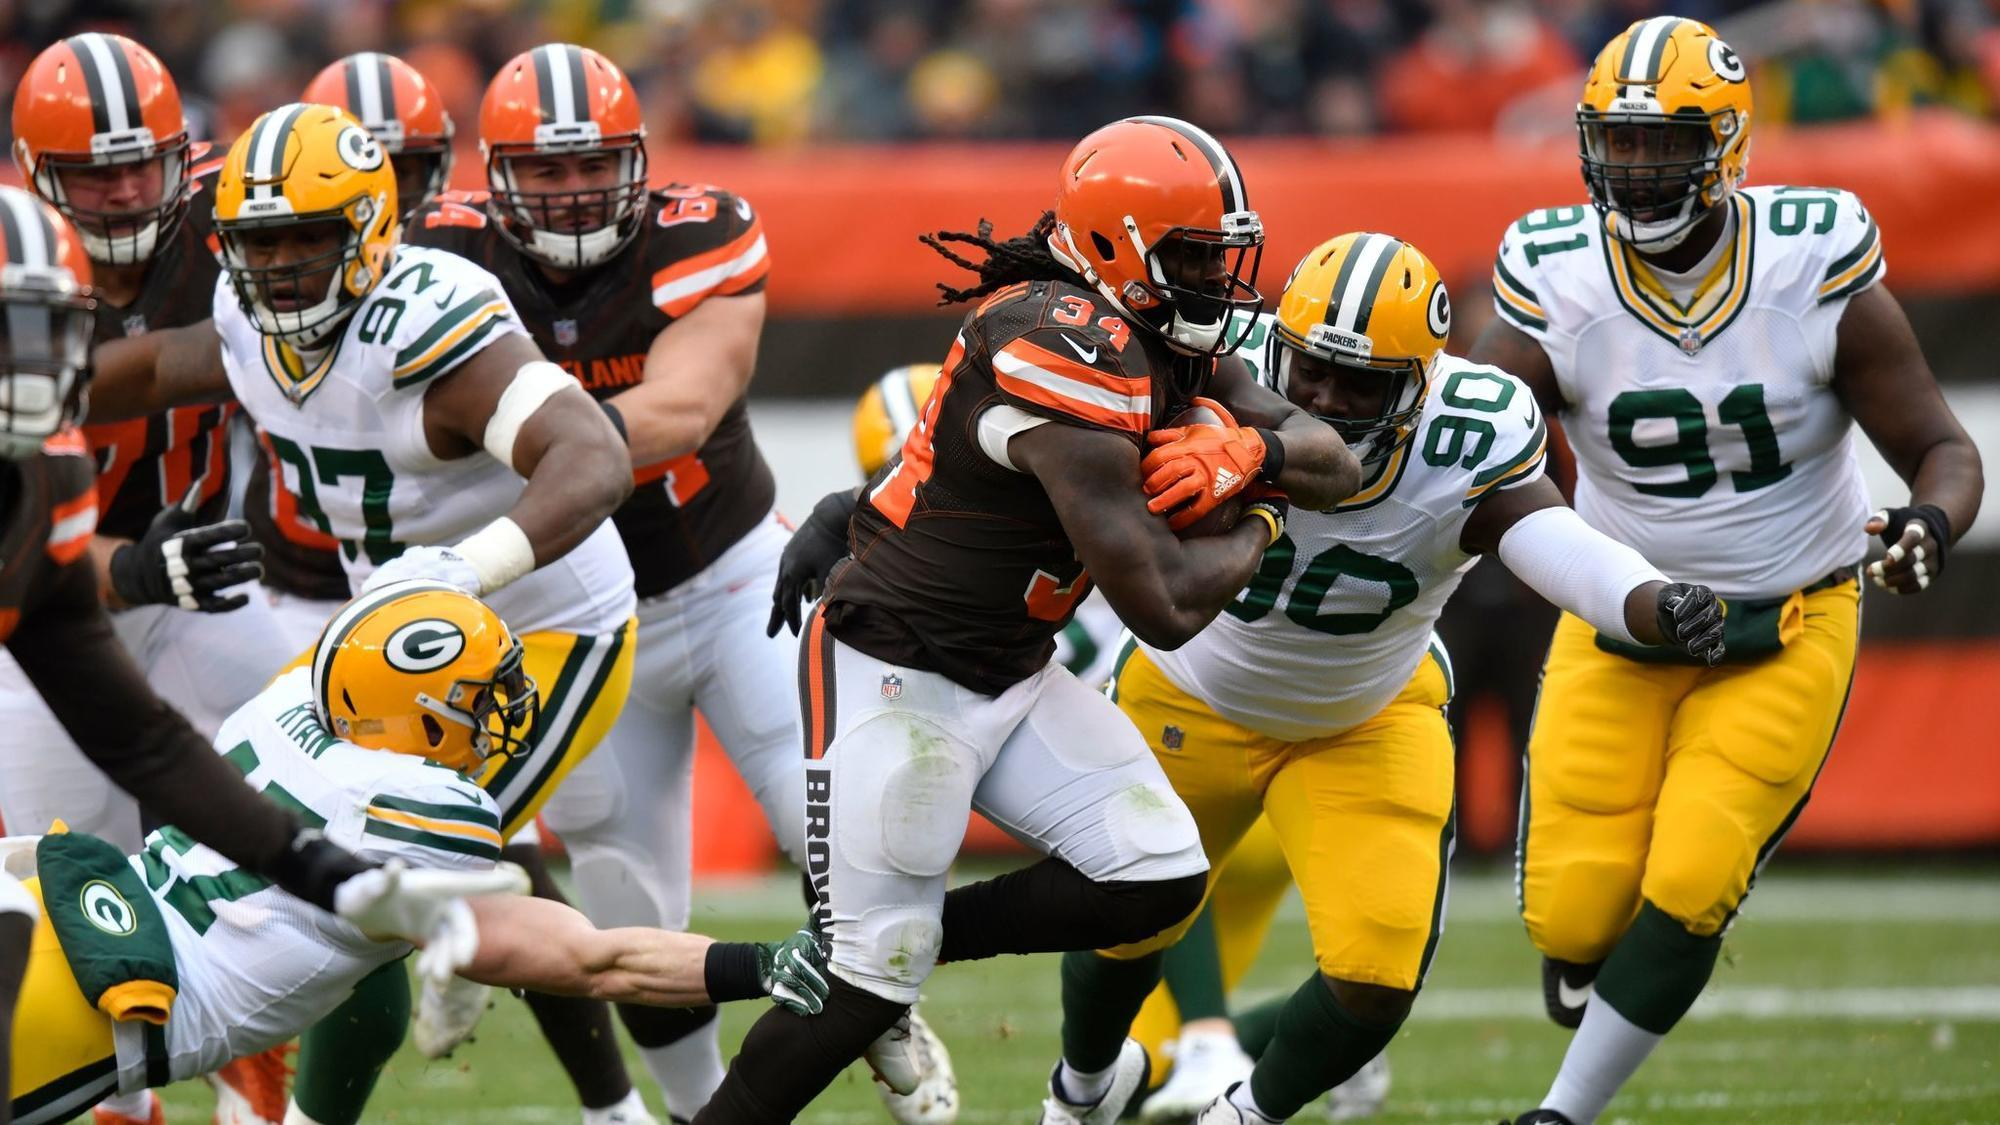 Bs-sp-ravens-run-defense-prepping-for-browns-isaiah-crowell-20171214